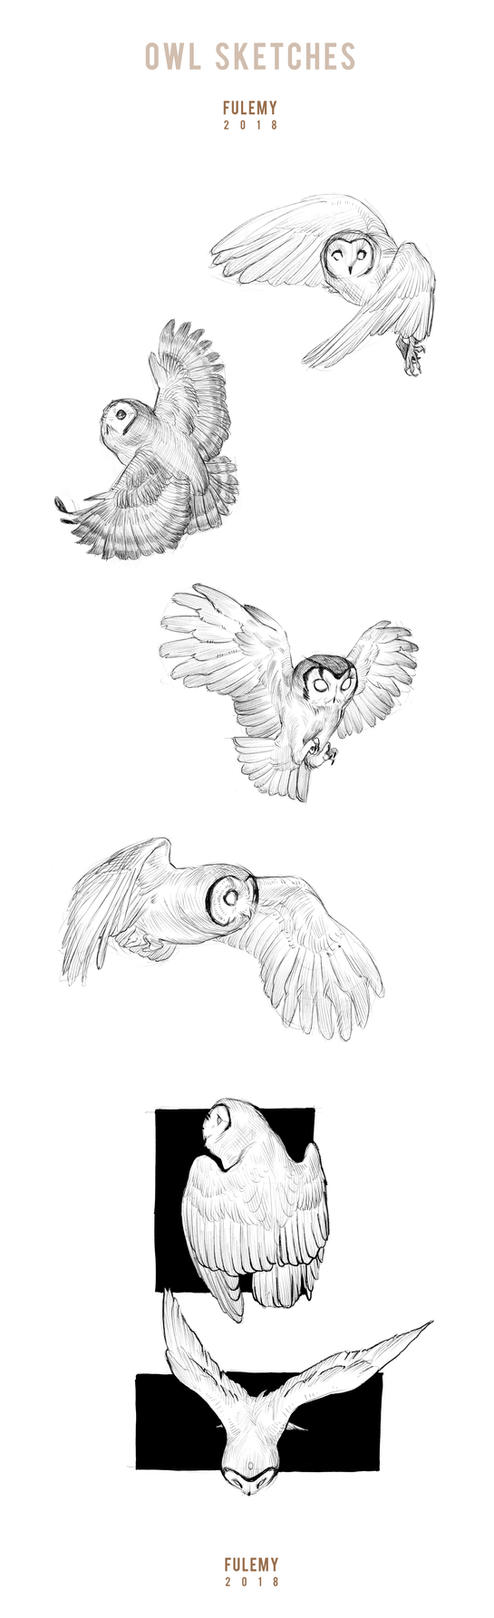 Owl Sketches 2018 by Fulemy